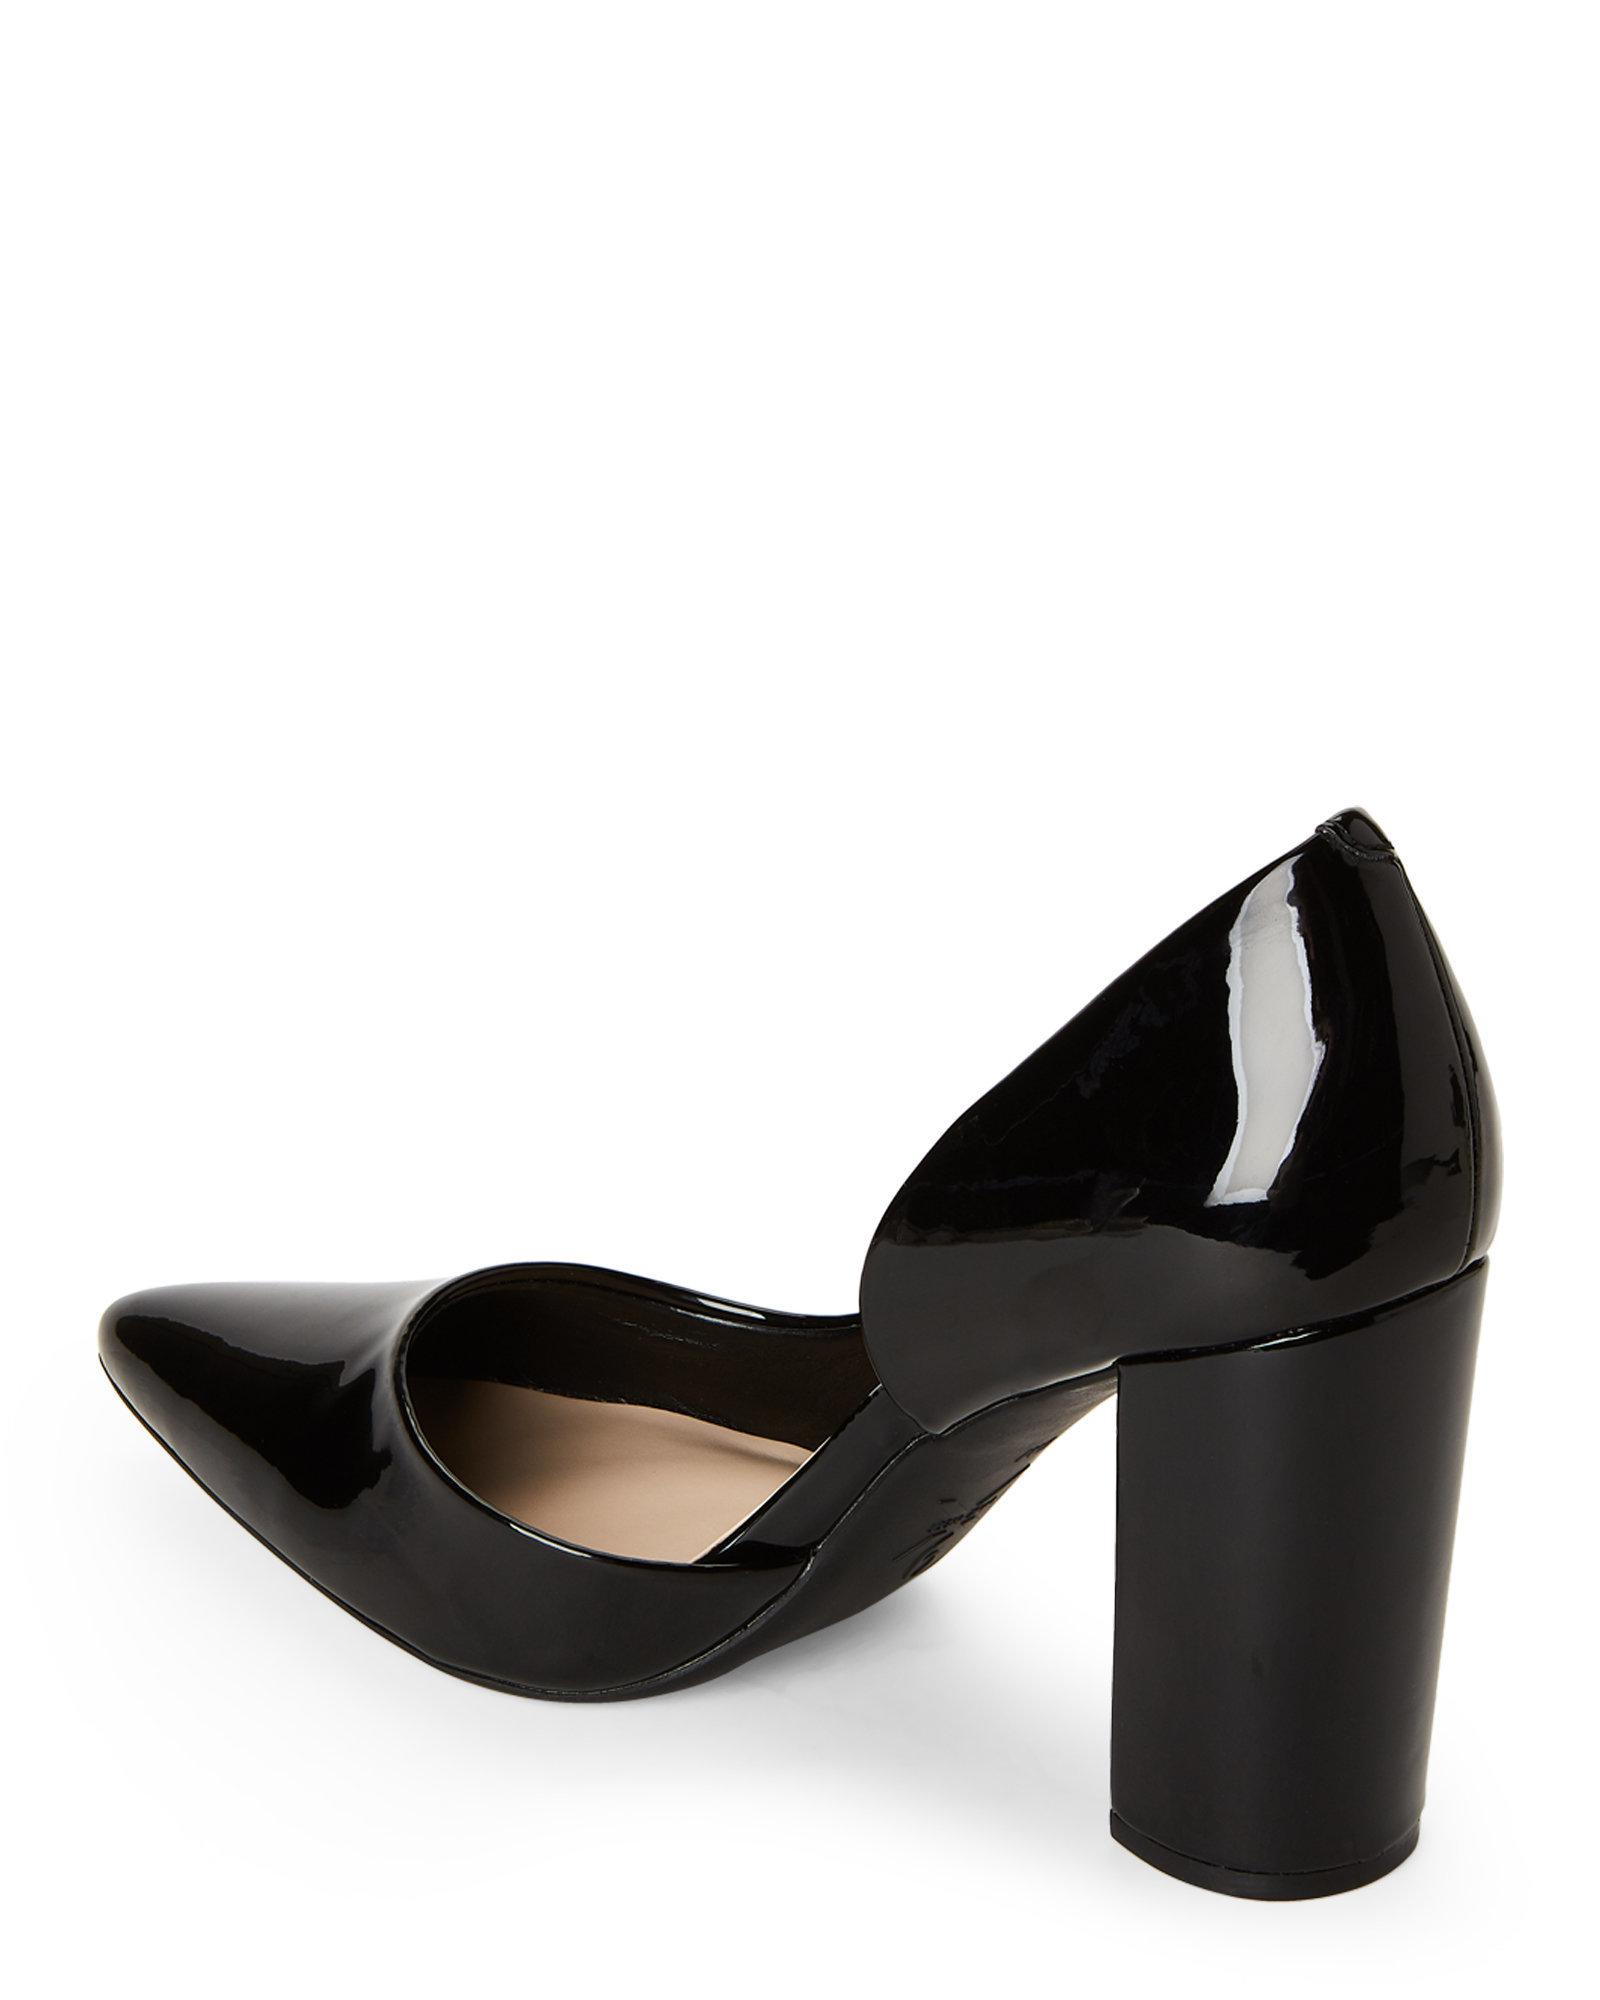 c0e315a9c5 Nine West Black Anisa Block Heel D'orsay Pumps in Black - Lyst